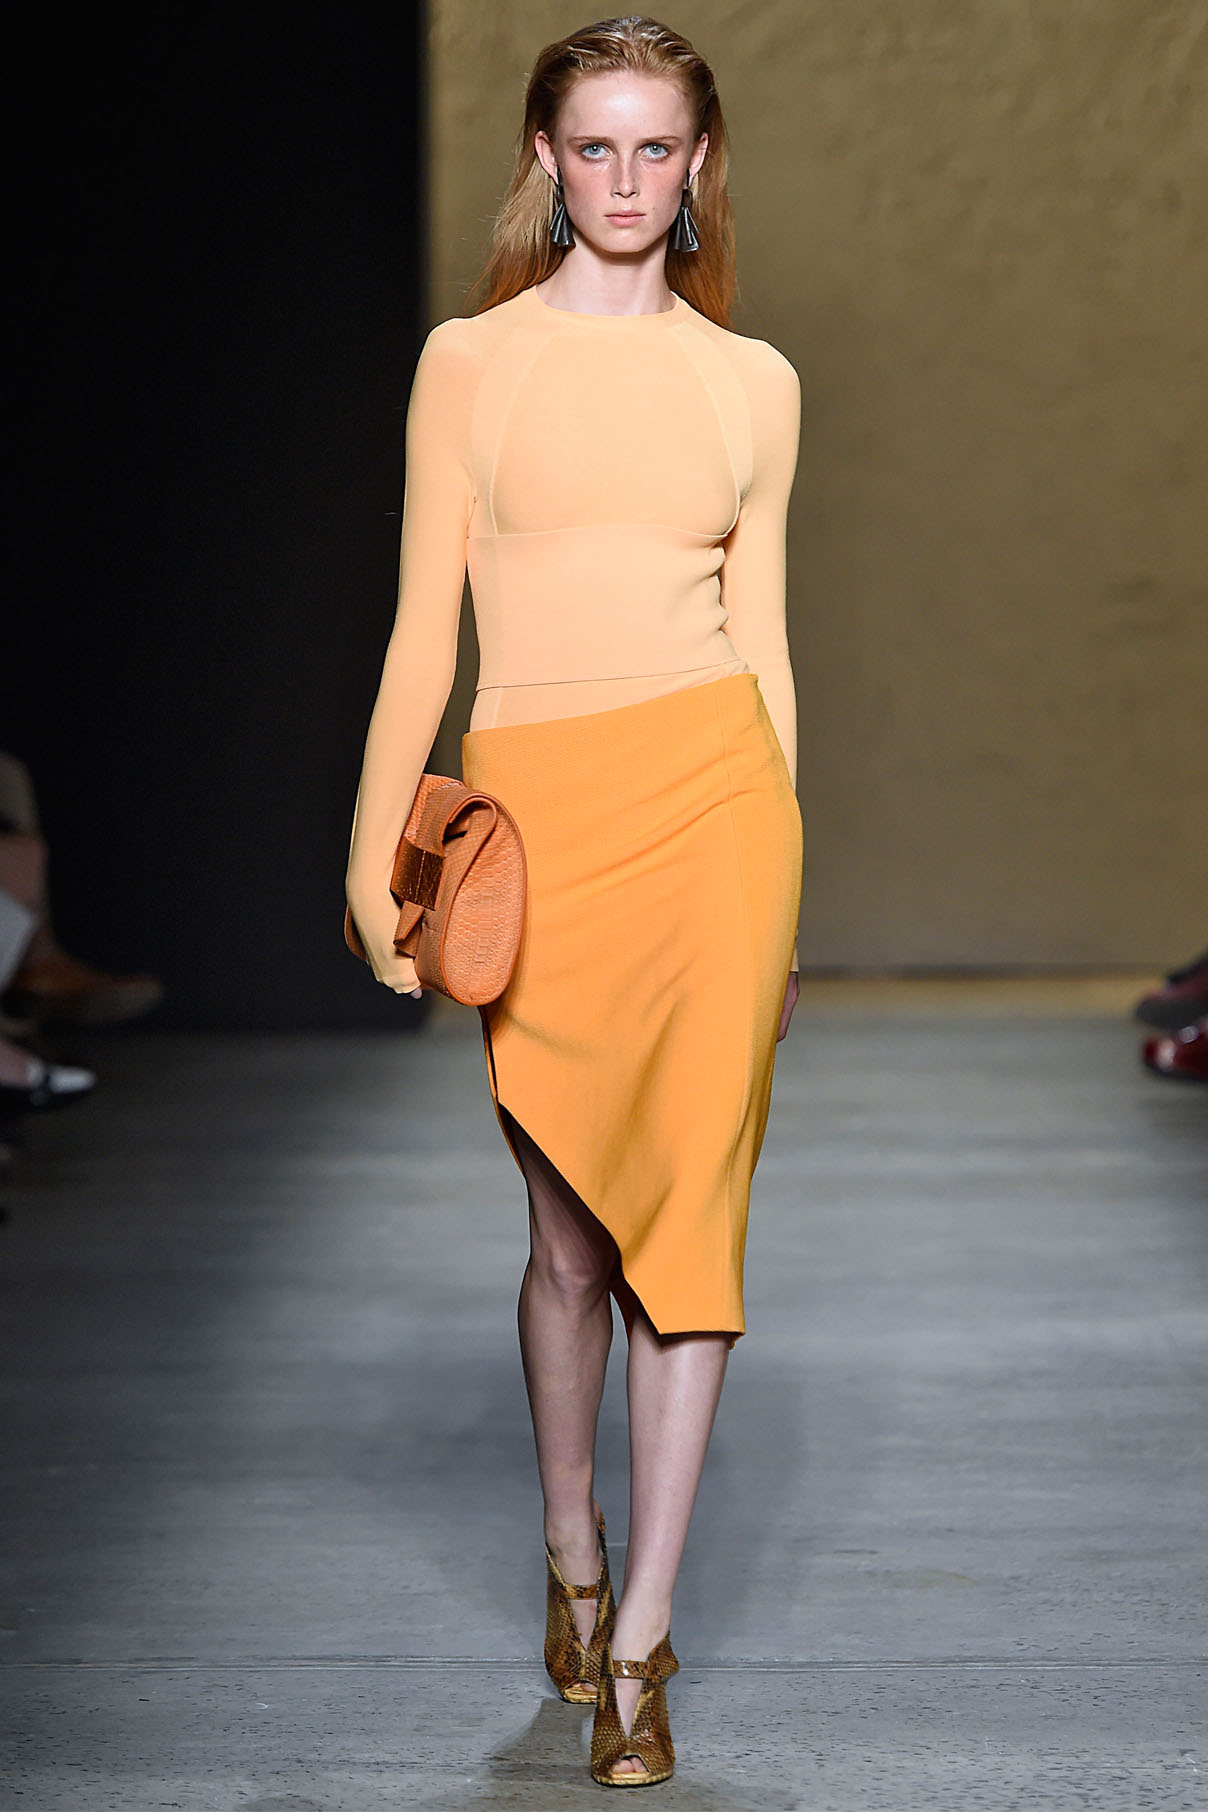 Look 5 Pale amber tubular knit top with bright amber wool ottoman angle skirt.